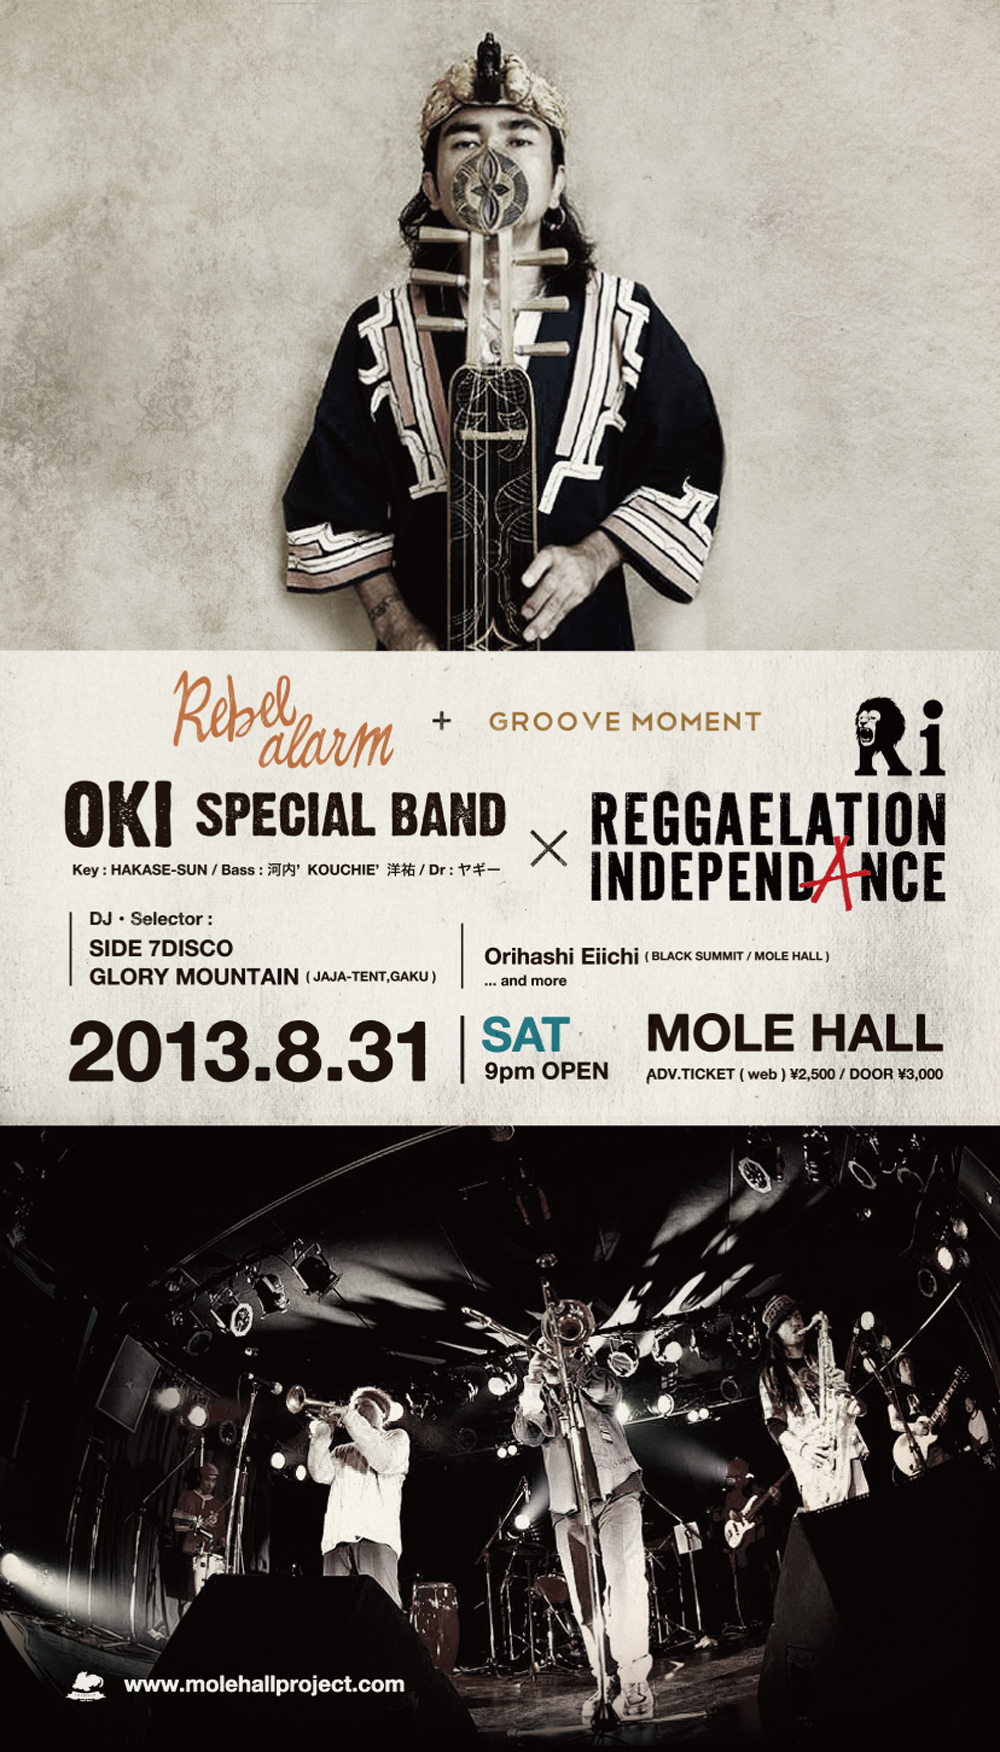 OKI BAND × Reggaelation IndependAnce